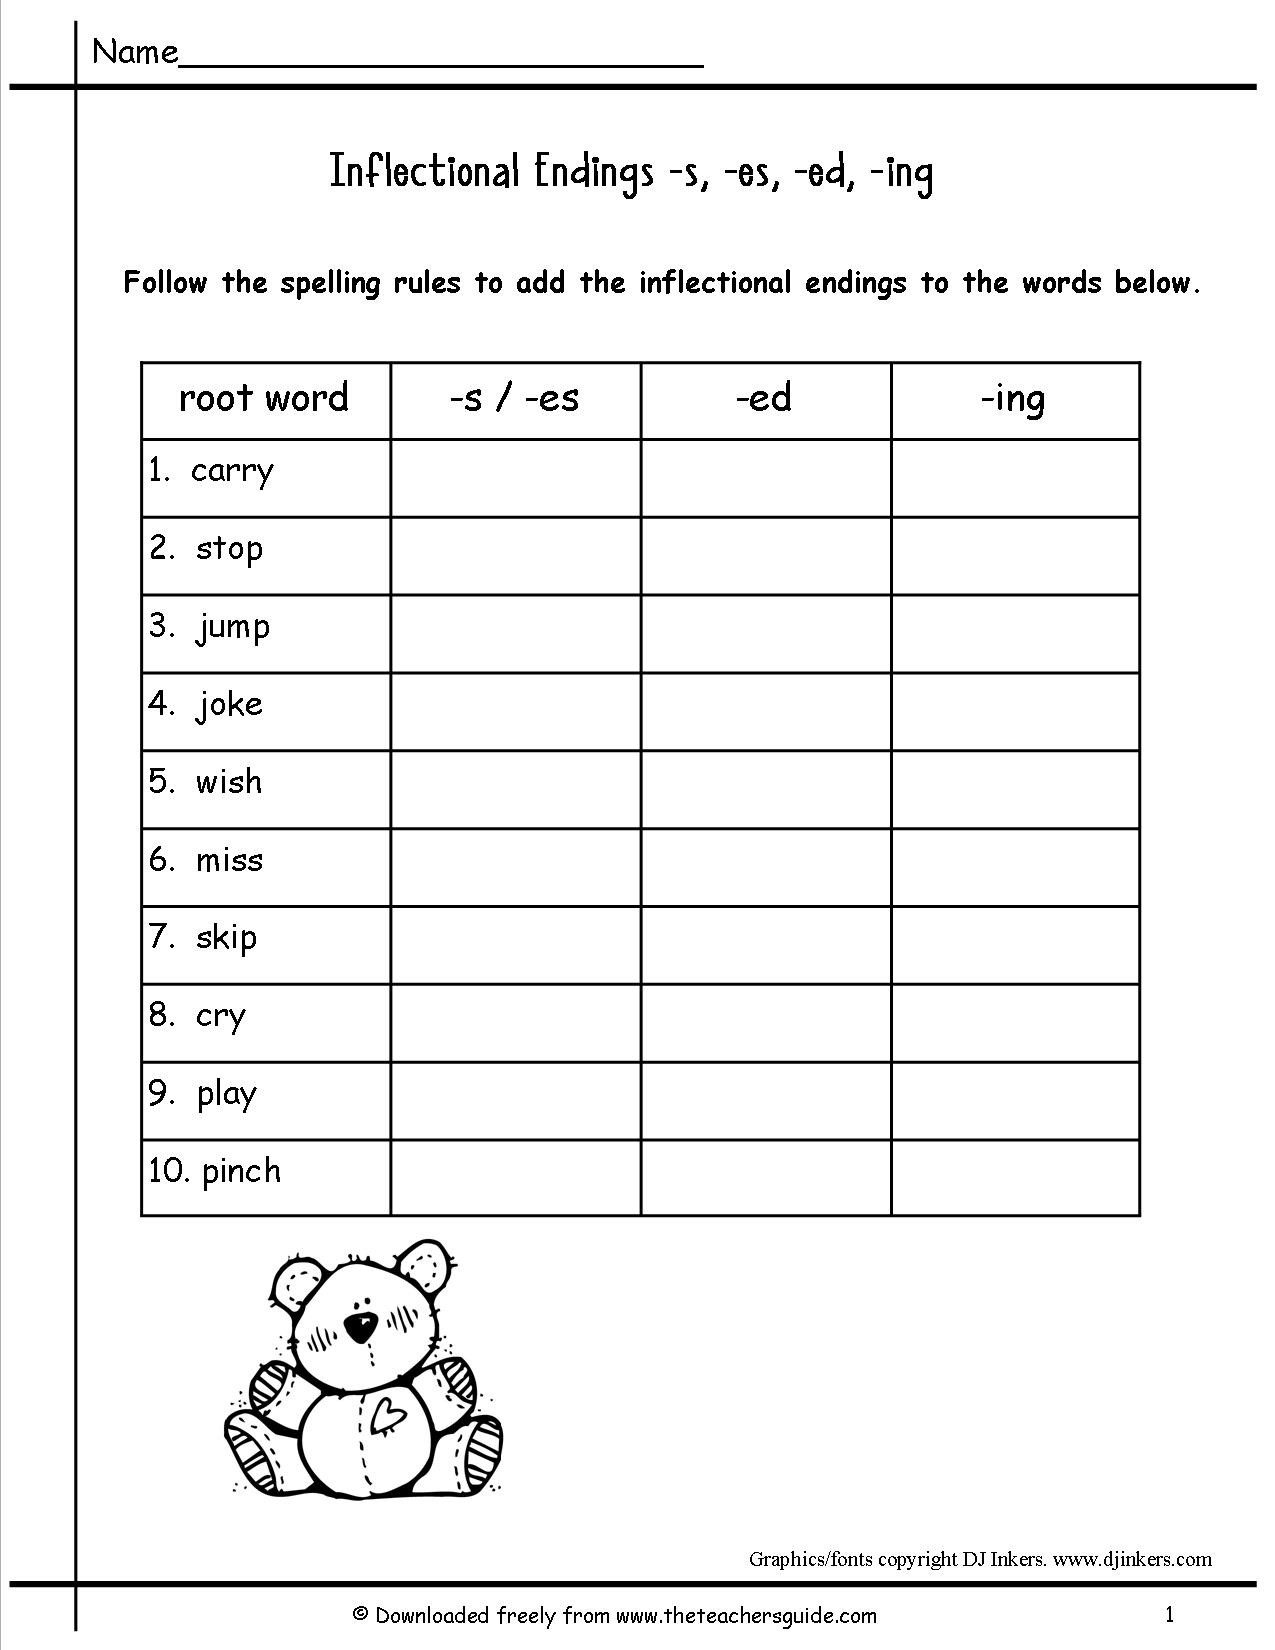 Inflected Endings Worksheets 2nd Grade Wonders Second Grade Unit Four Week Two Printouts